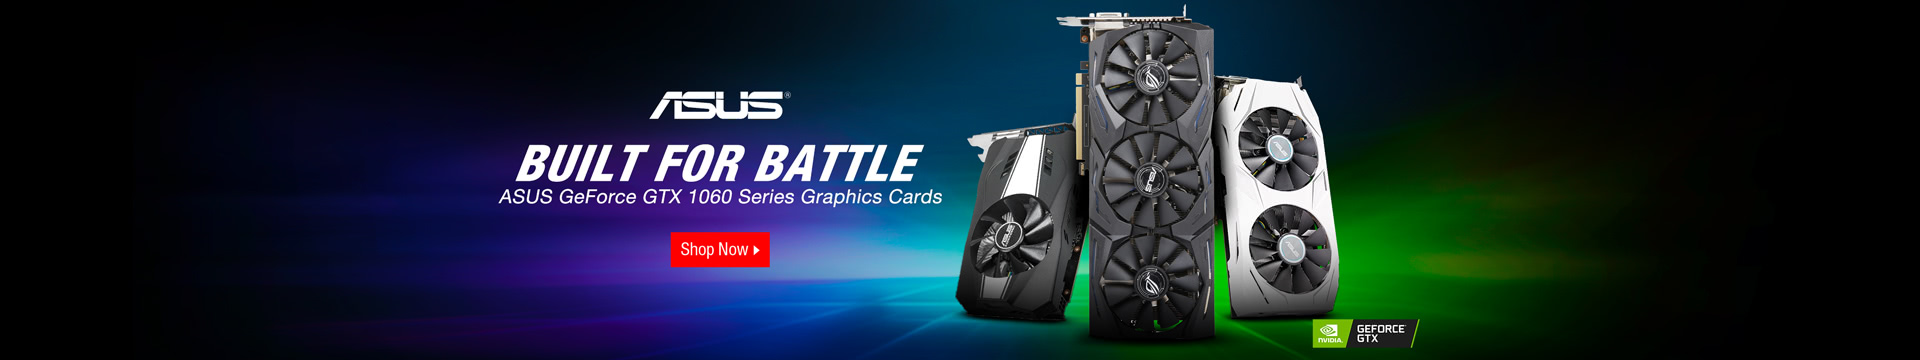 Graphics Cards and Video Cards - Newegg com